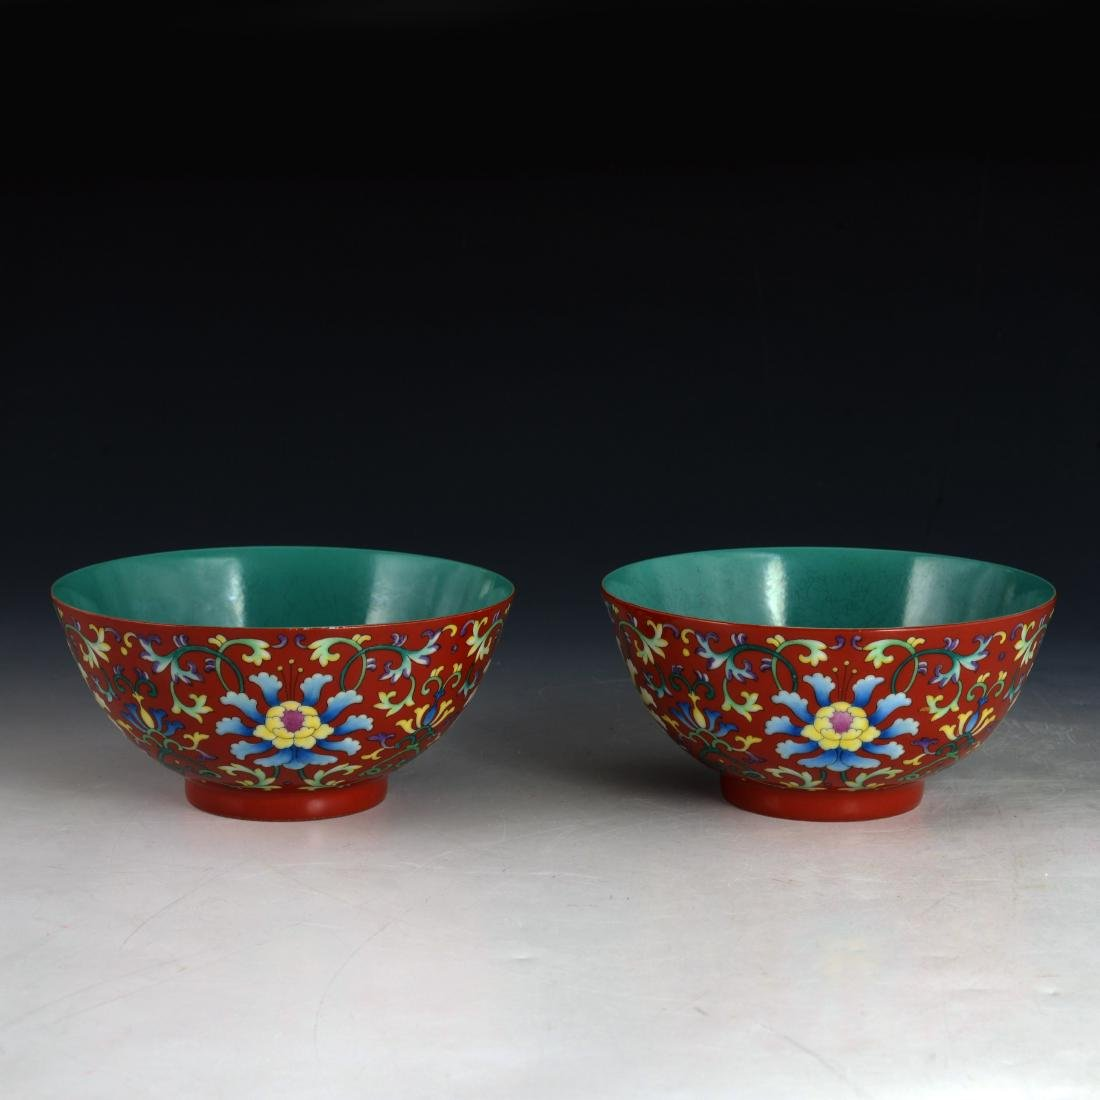 PAIR OF CHINESE RED GLAZED FAMILLE ROSE BOWL